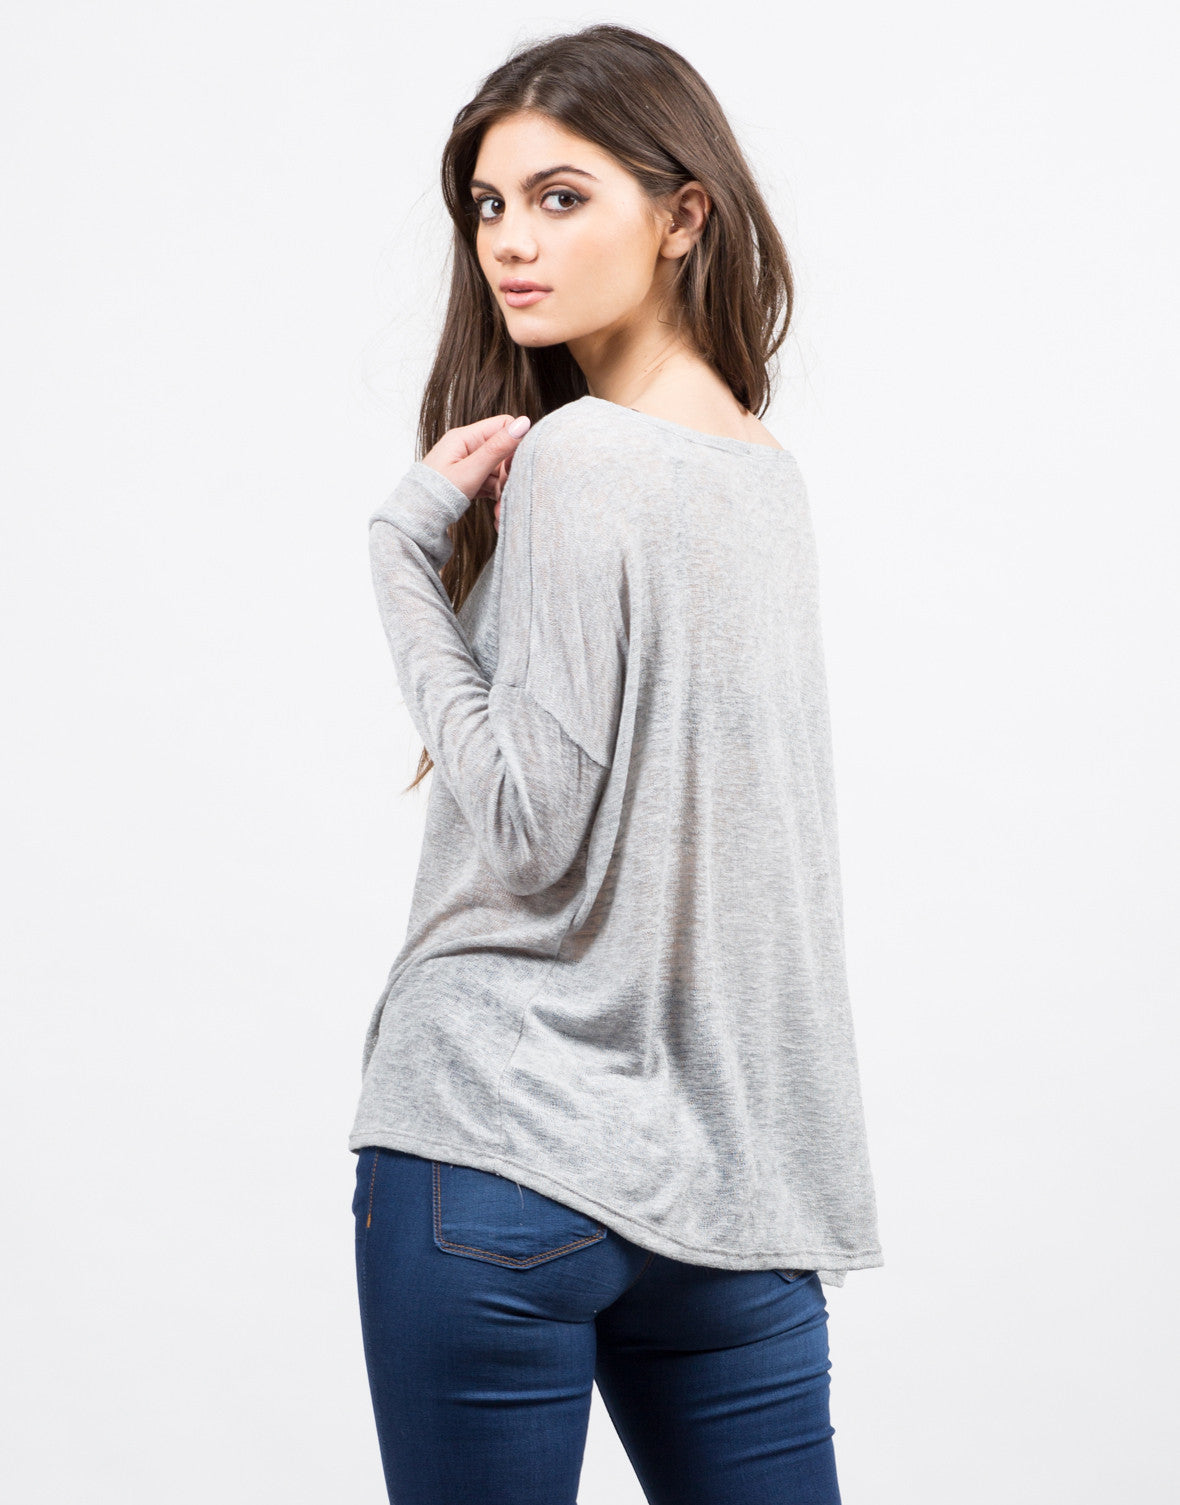 Back View of Boxy Lightweight Sweater Top